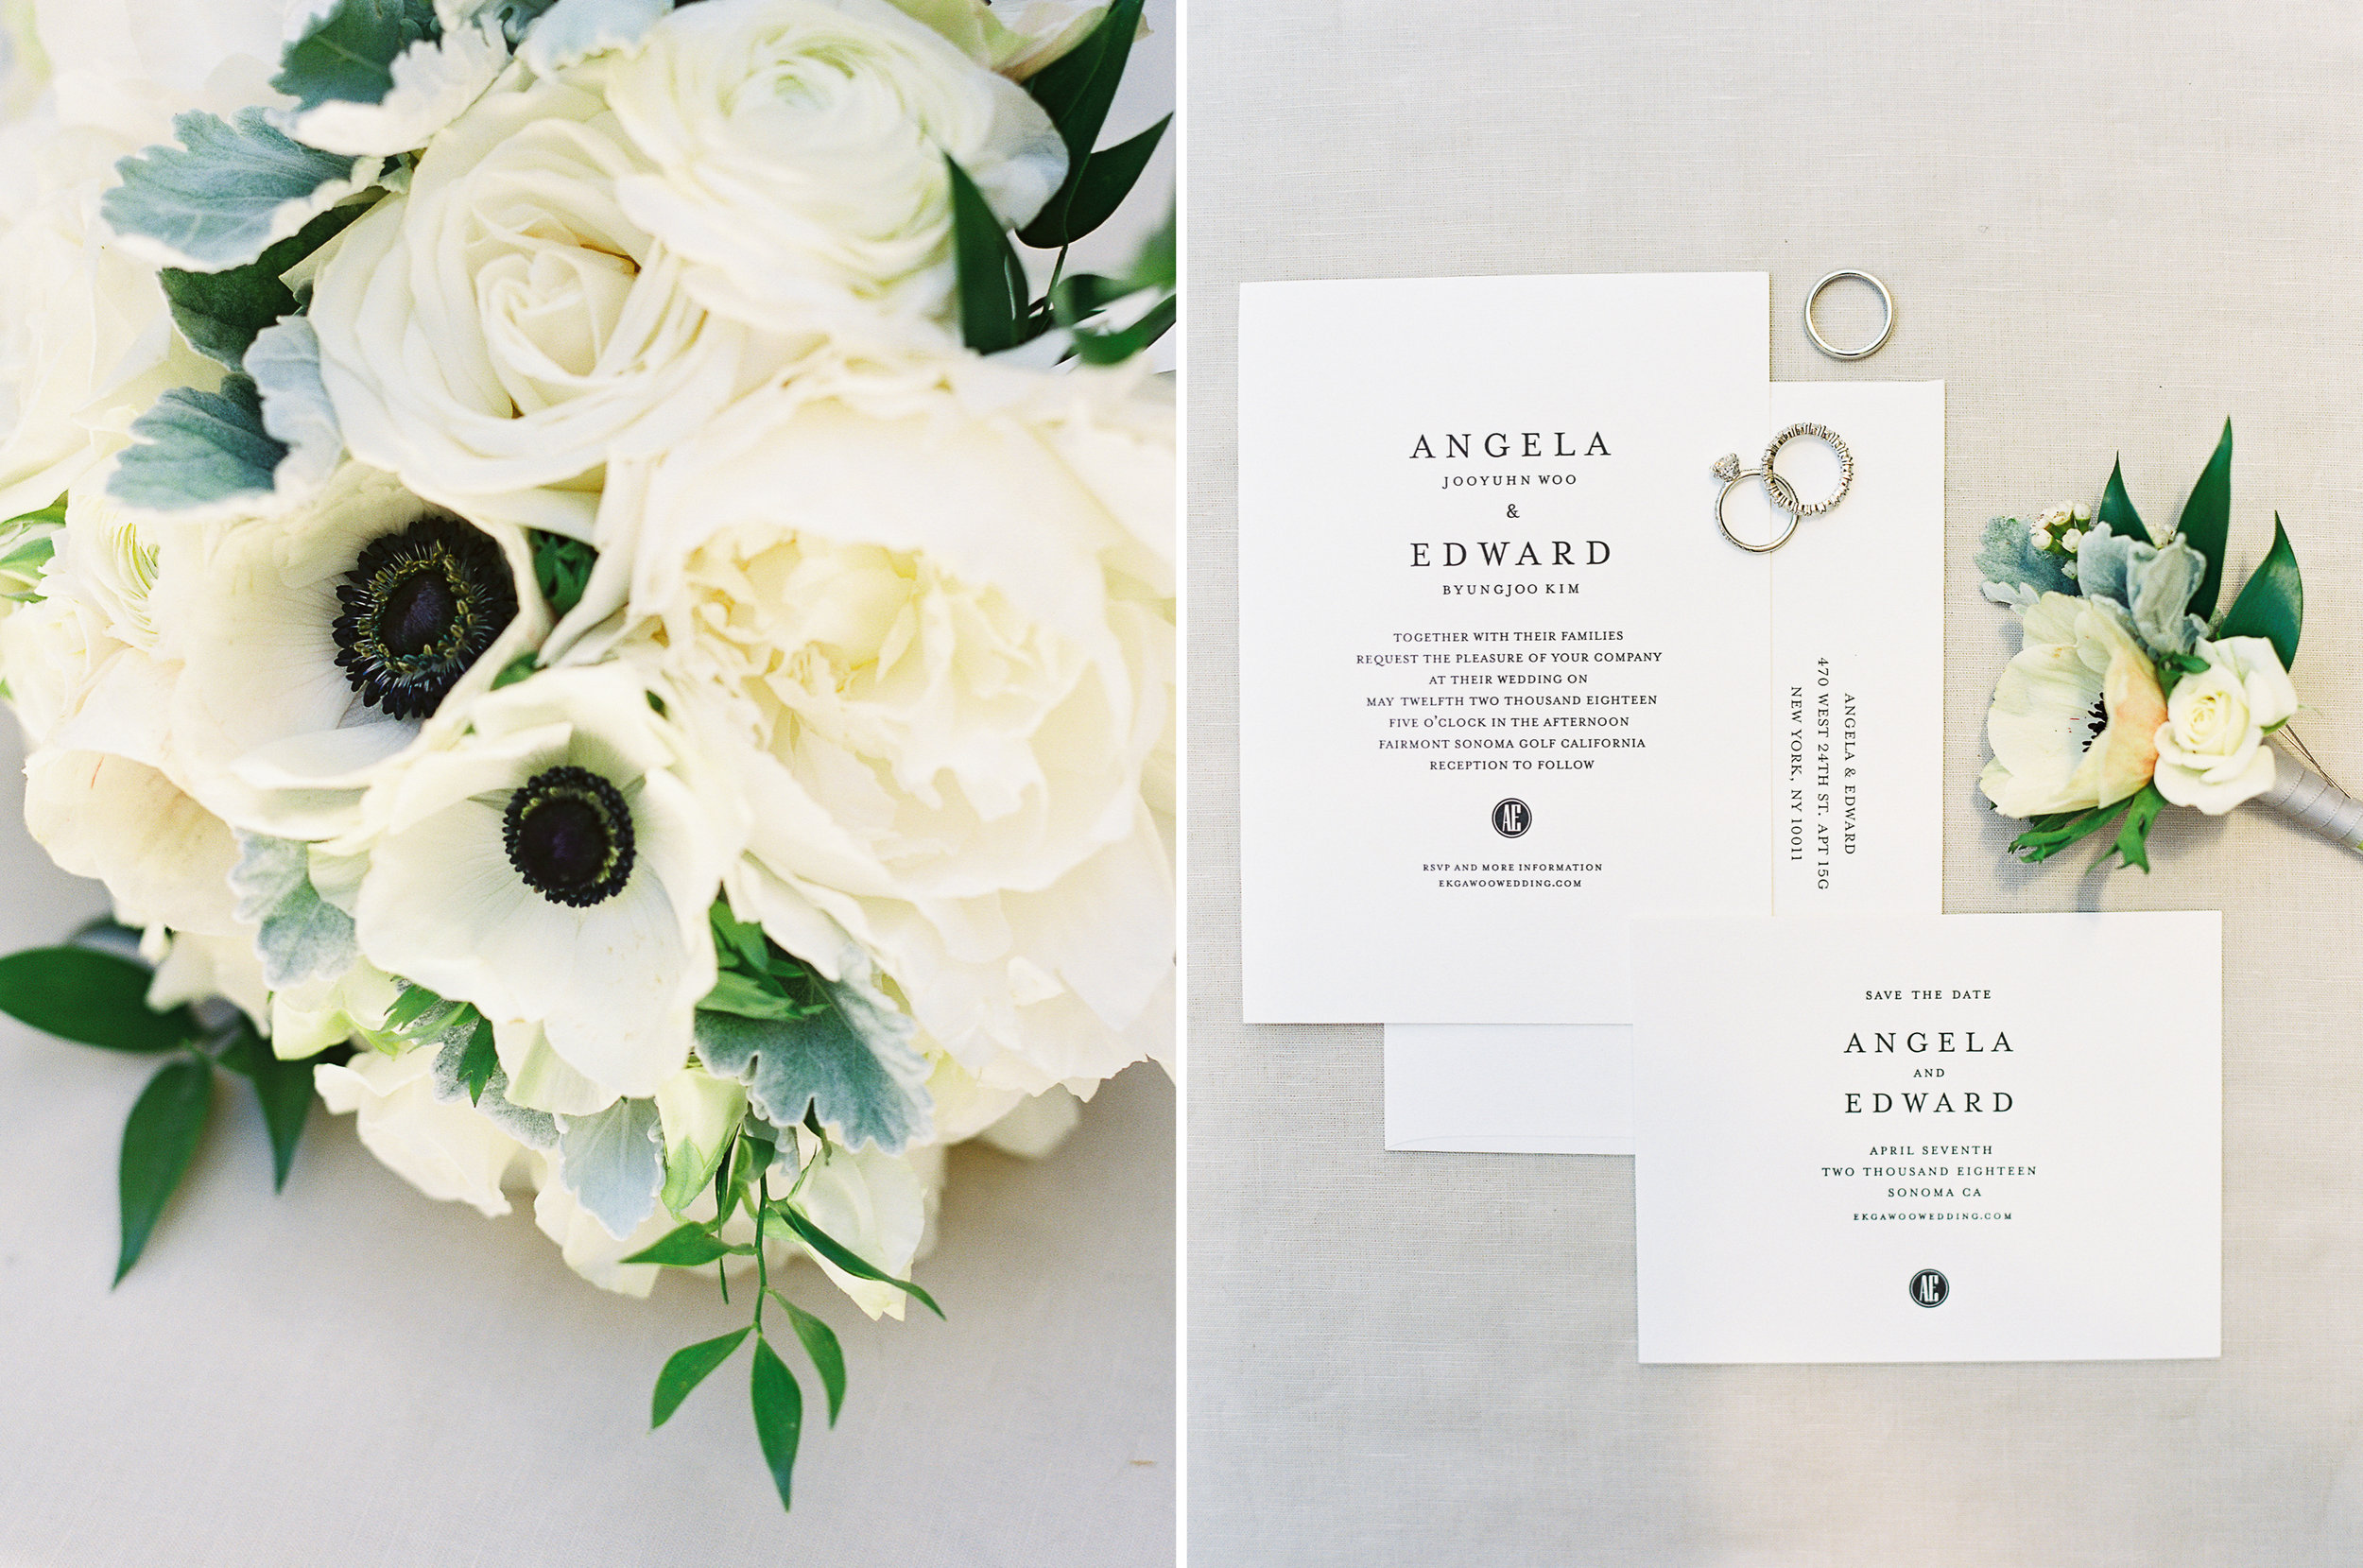 Meghan Mehan Photography - Sonoma Golf Club Wedding - California Film Wedding Photographer - 009.jpg